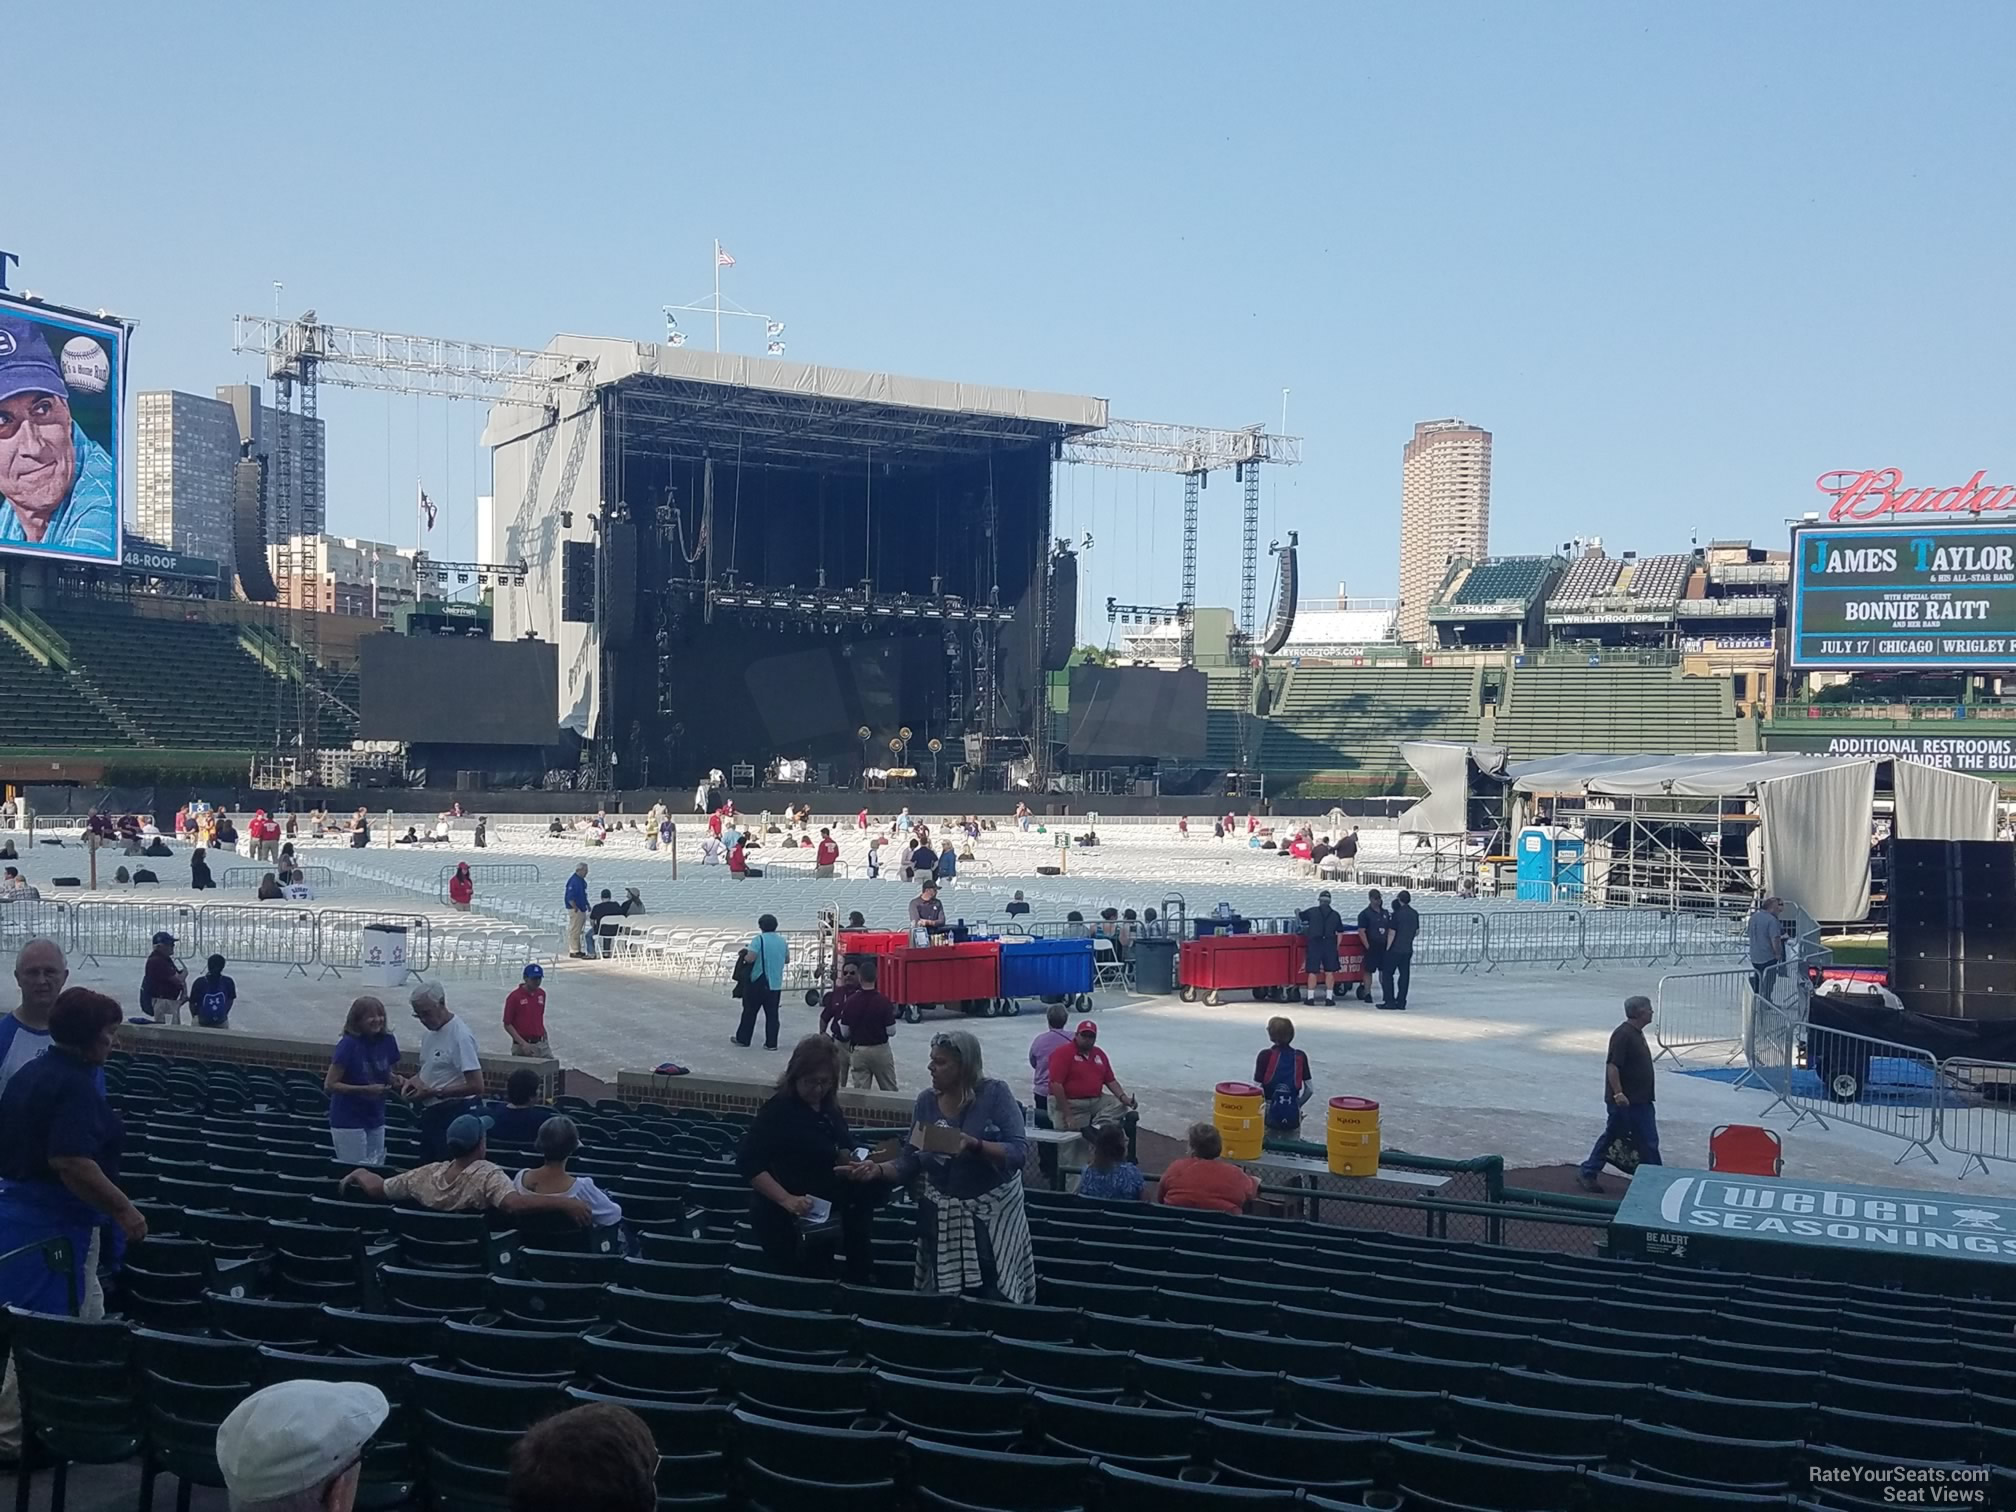 Wrigley Field Section 112 Concert Seating - RateYourSeats.com